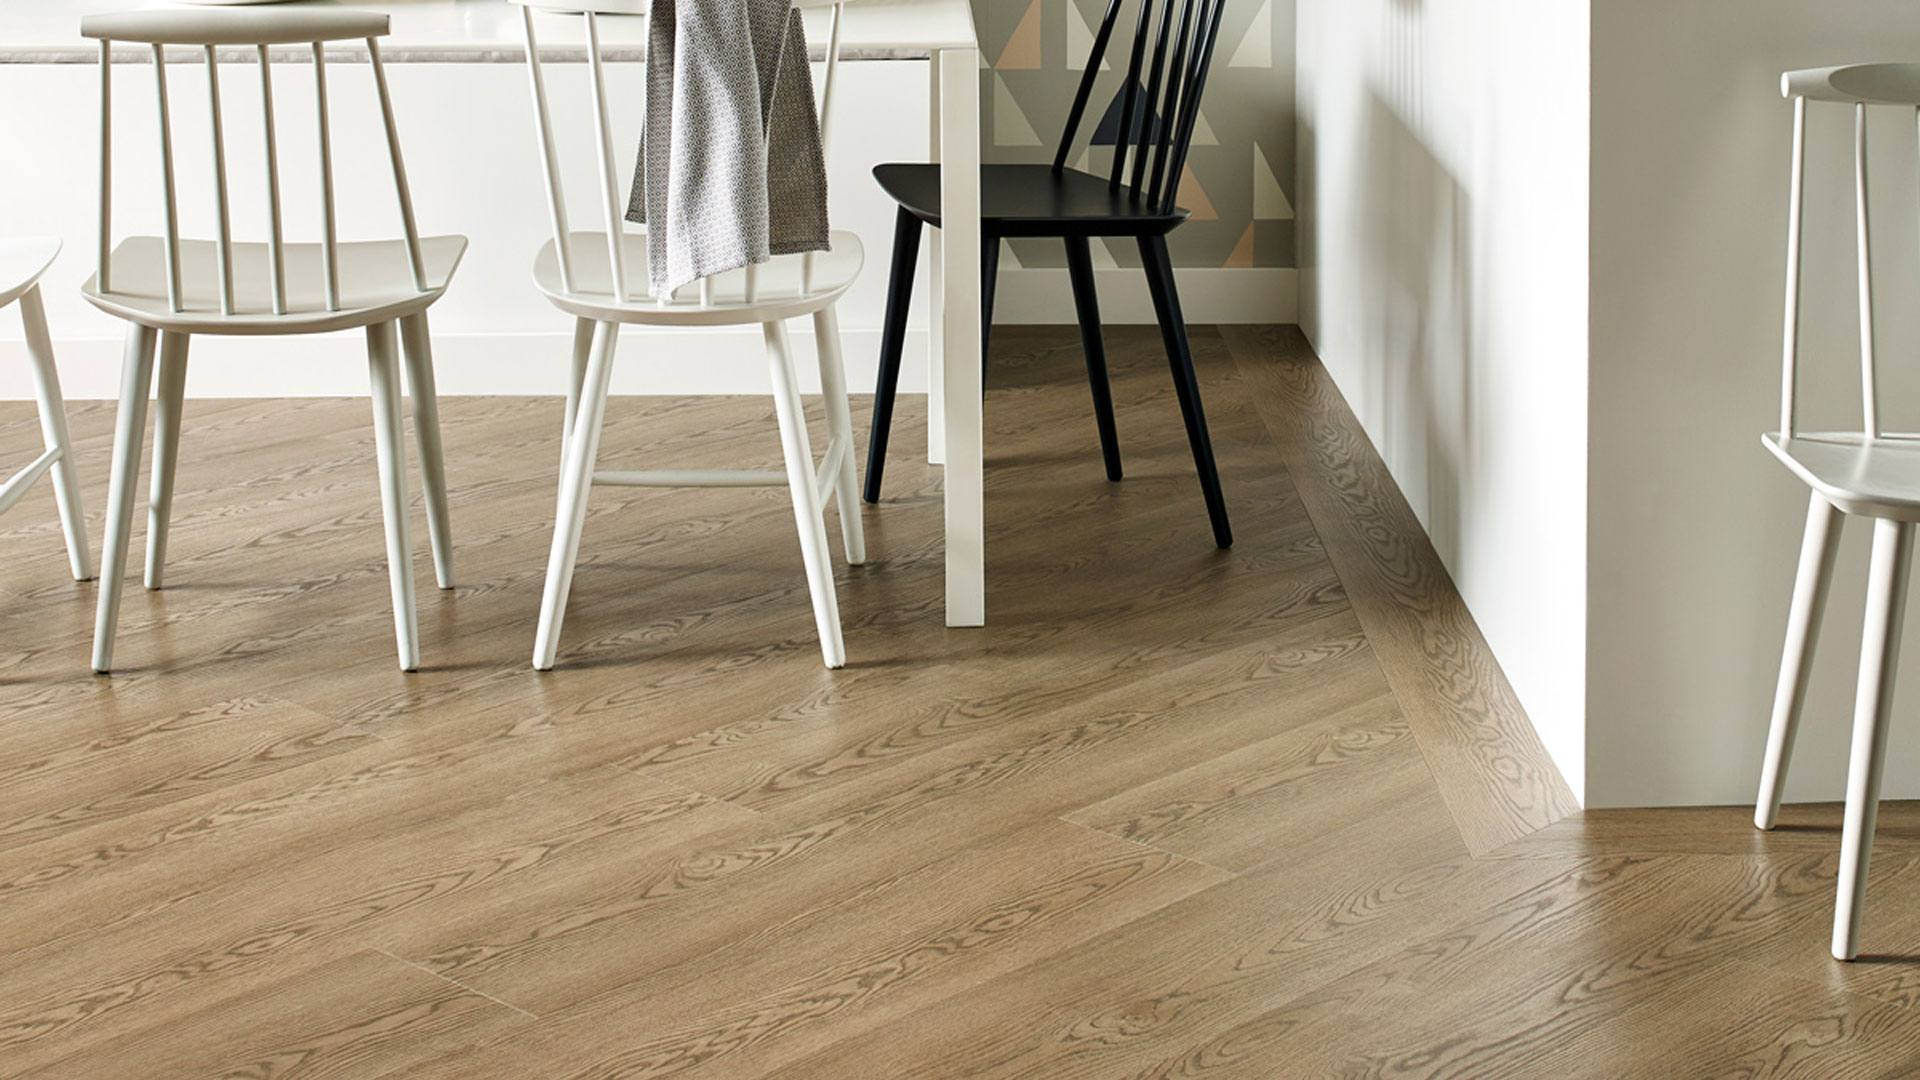 Amtico floorcare: What You Should Do To Make Sure Your Amtico flooring Is Cared For Correctly